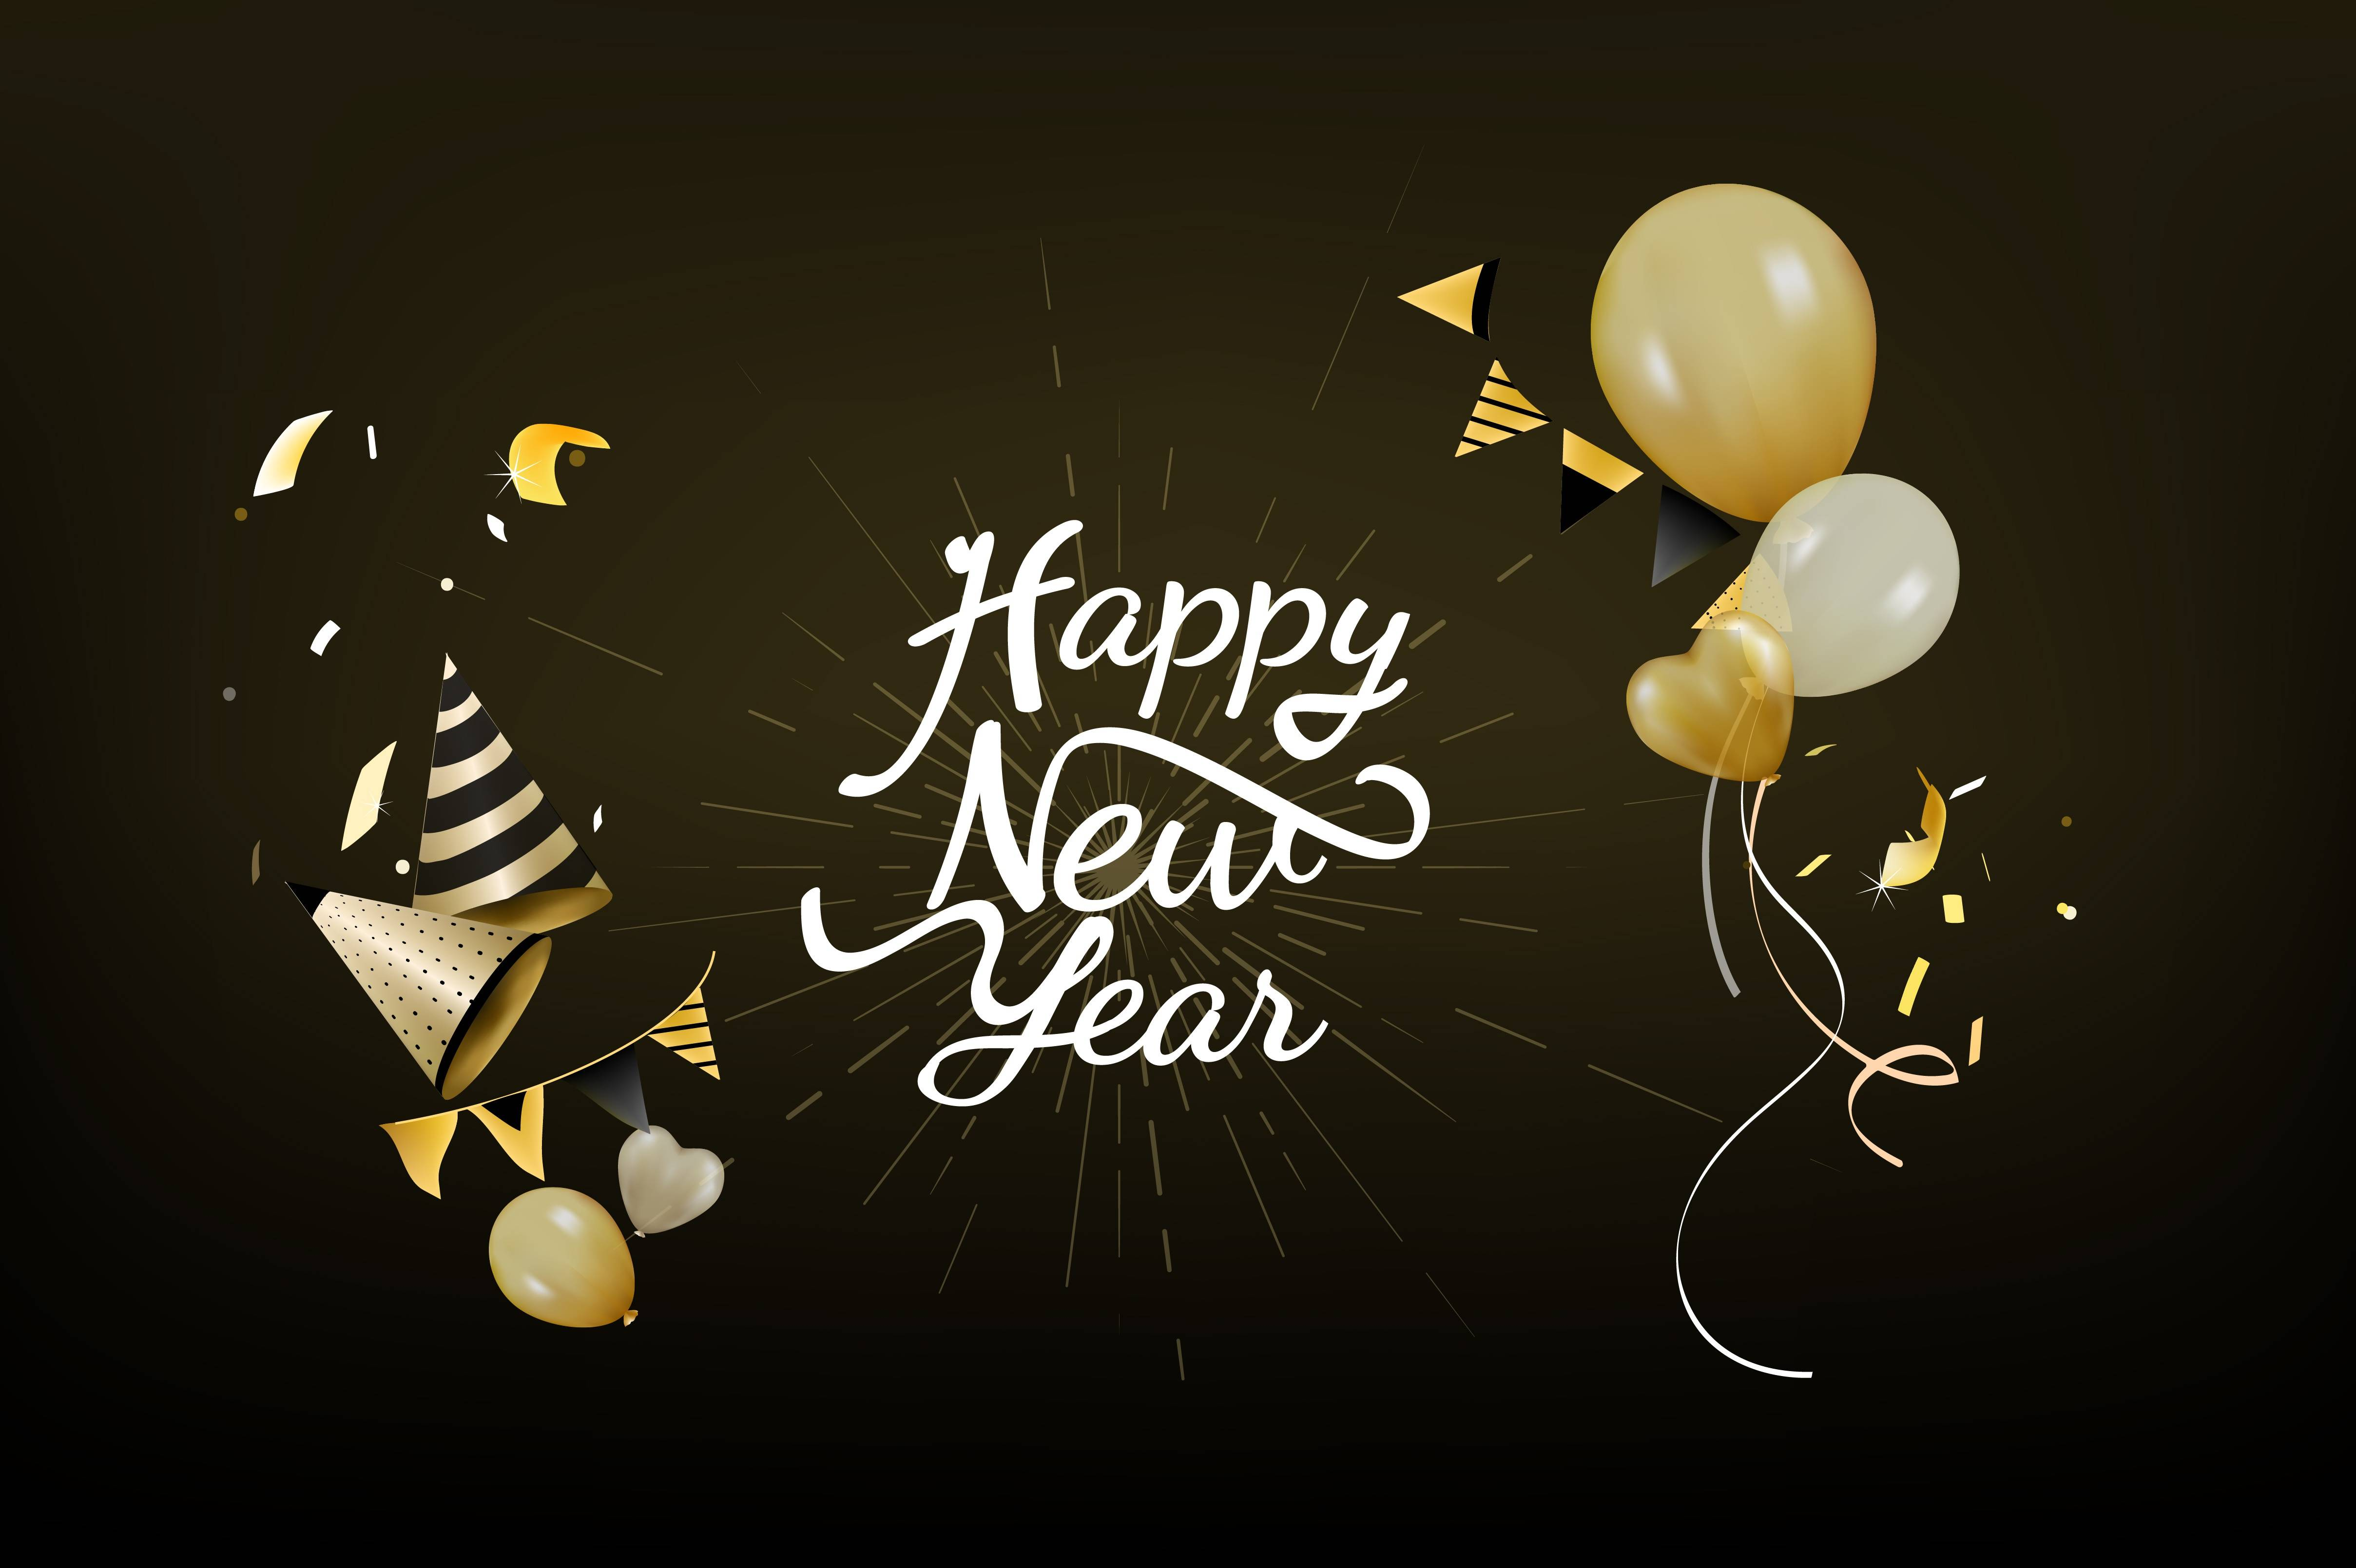 Happy New Year Wallpapers - Top Free Happy New Year Backgrounds